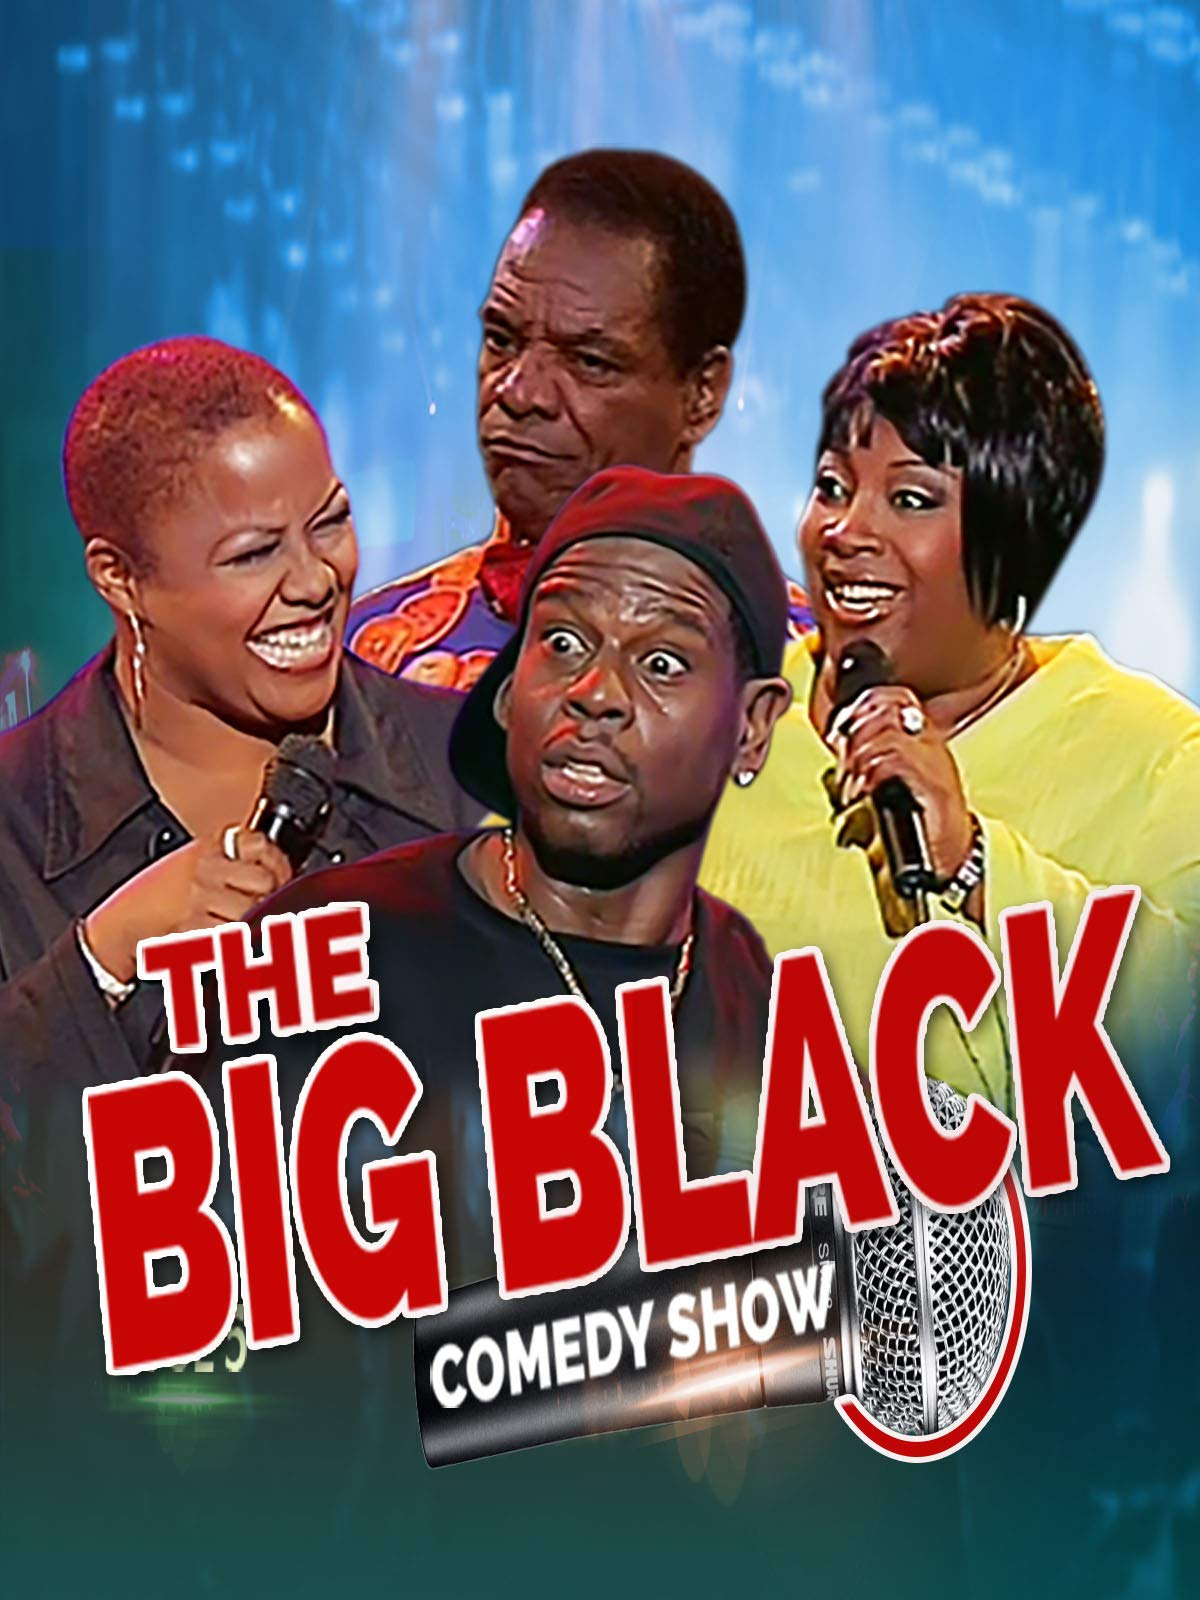 The Big Black Comedy Show, Vol. 5